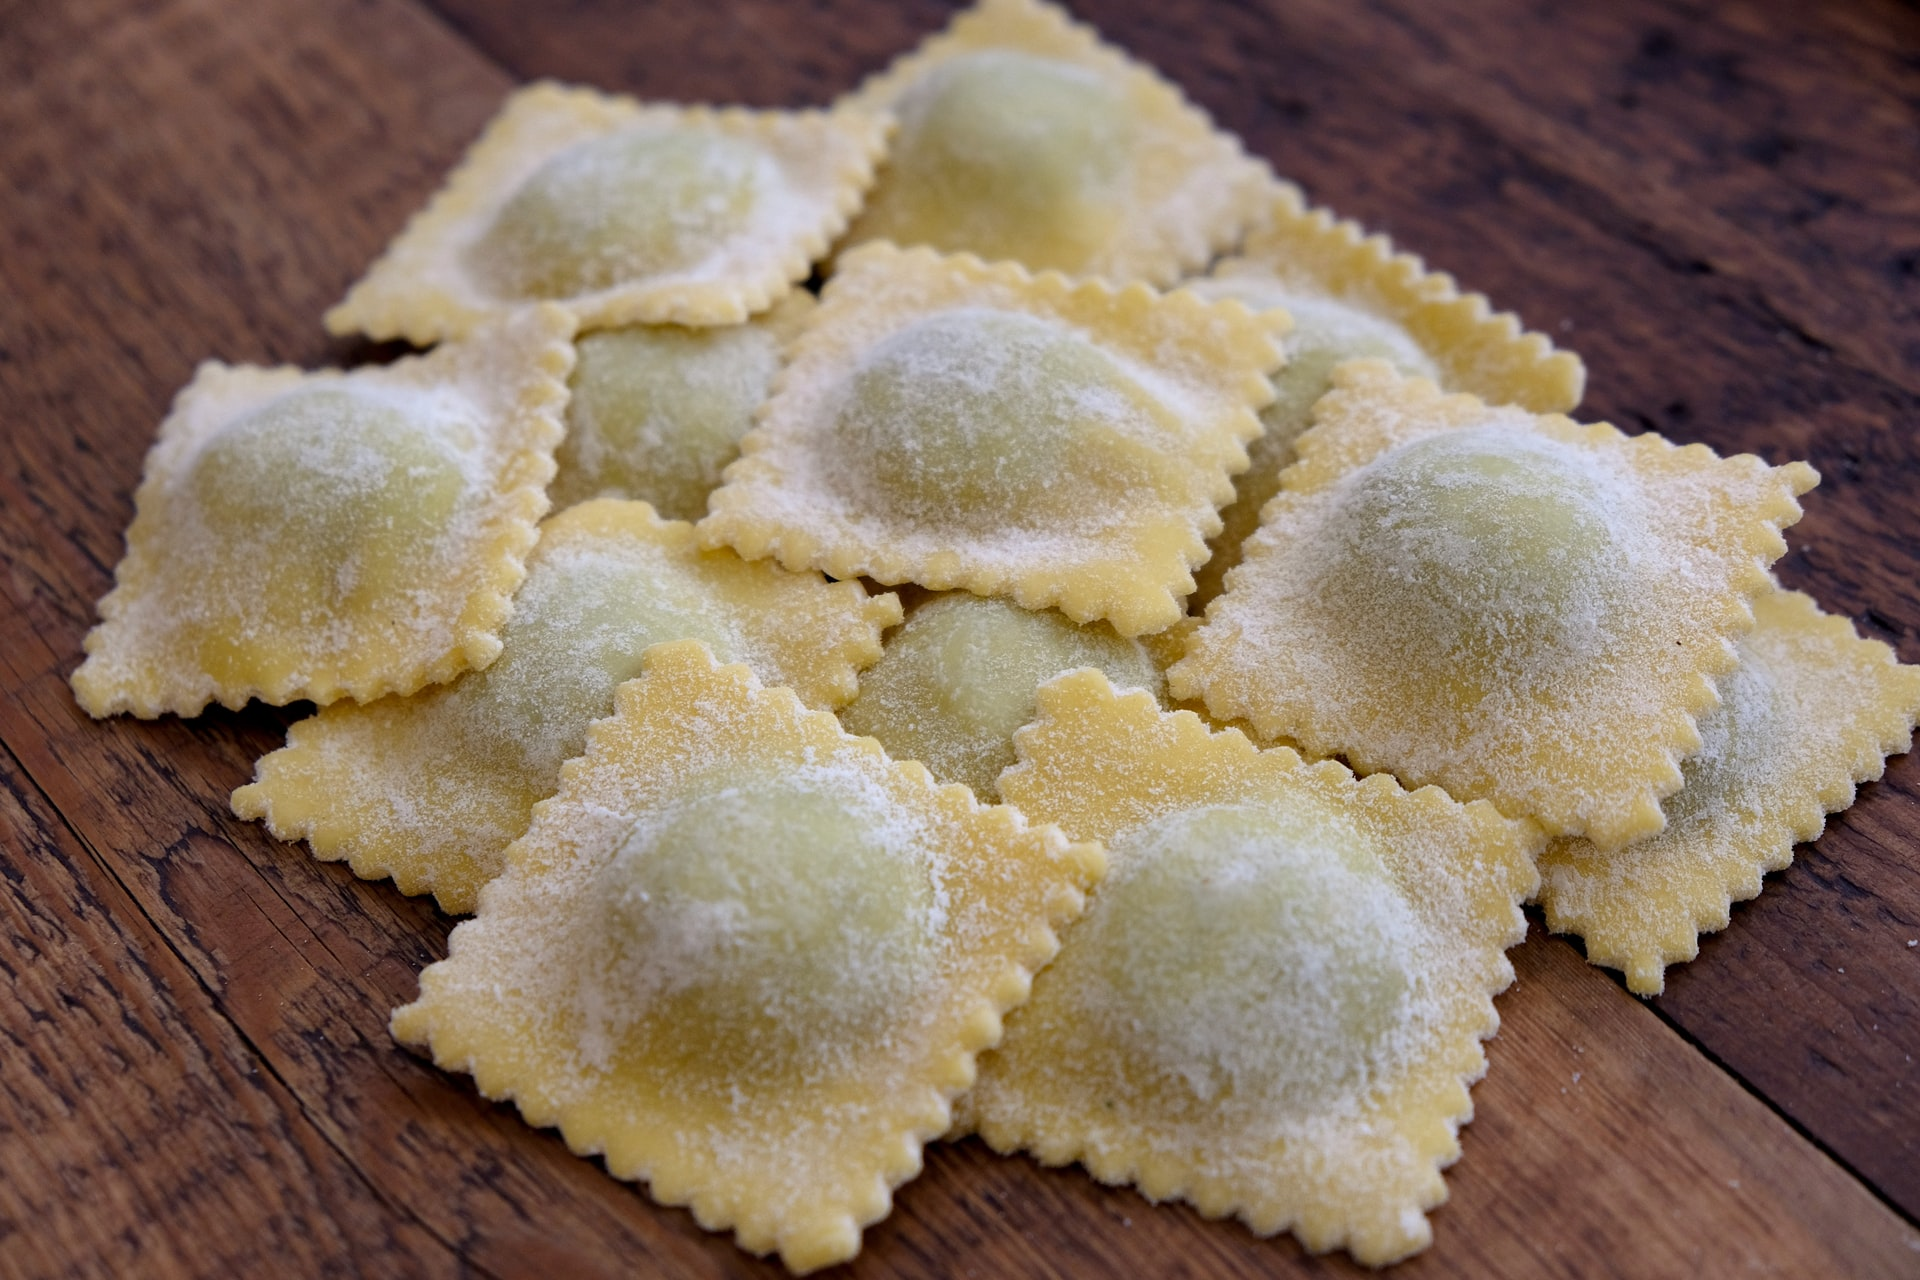 ravioli with ricotta and spinach fillings